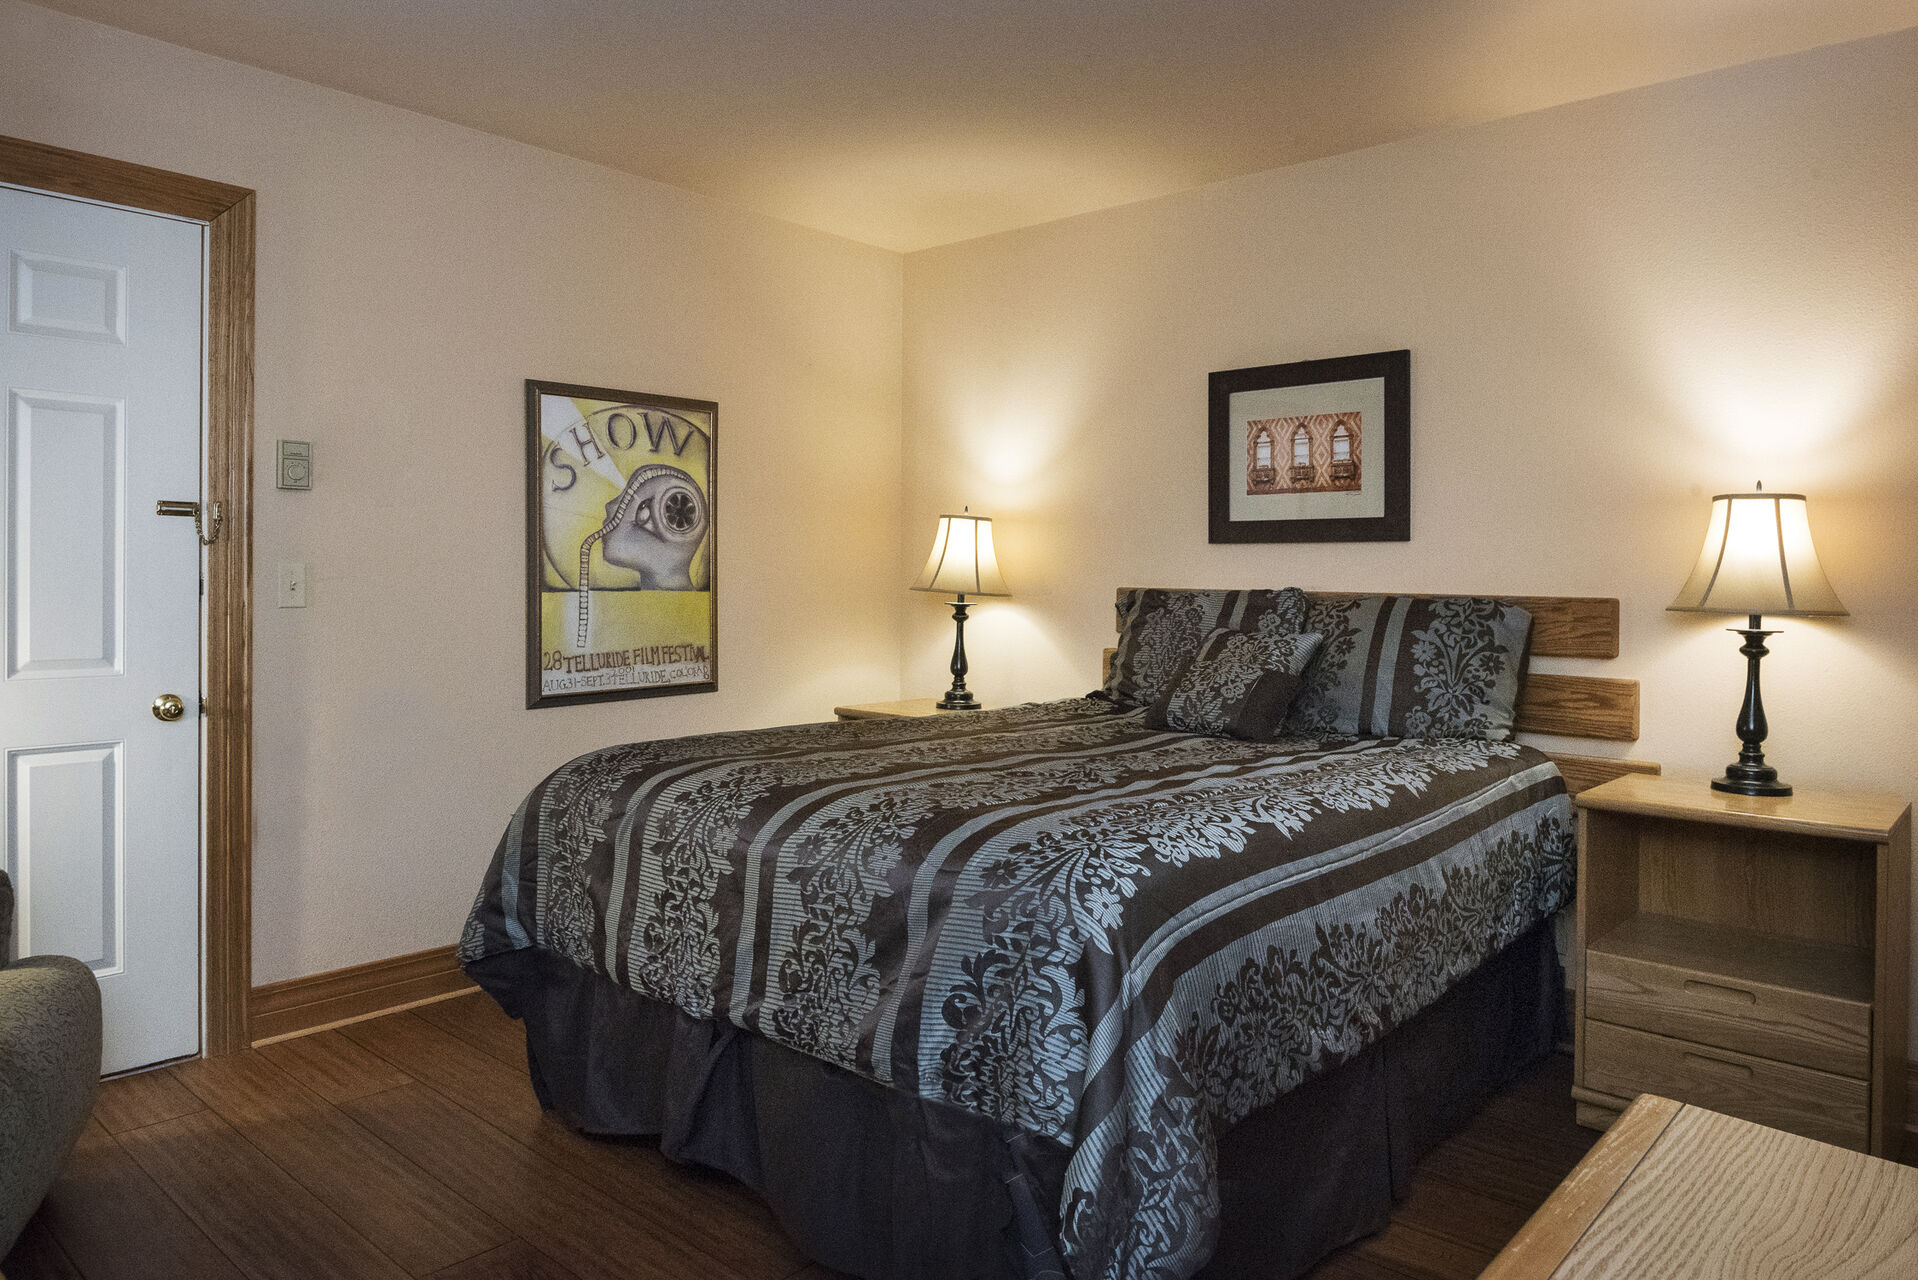 Second bedroom with a double bed and nightstands